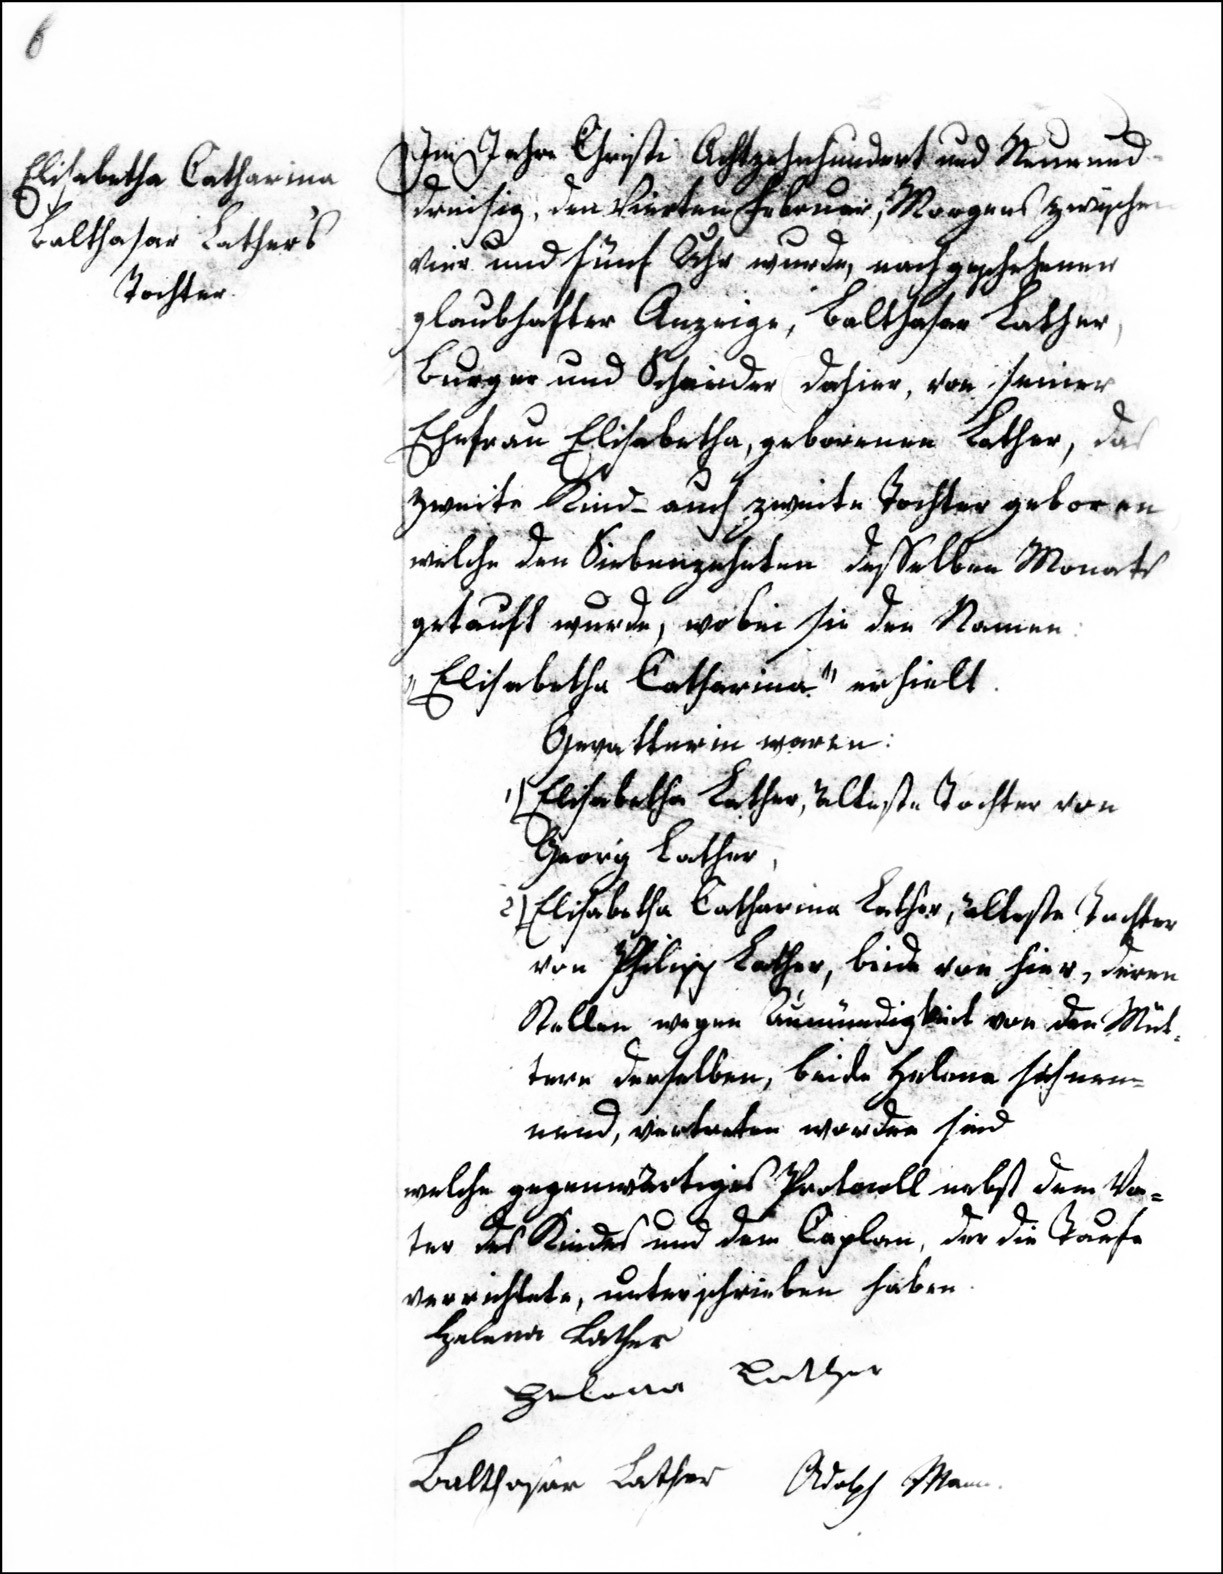 The Birth and Baptismal Record of Elisabetha Catharina Lather -